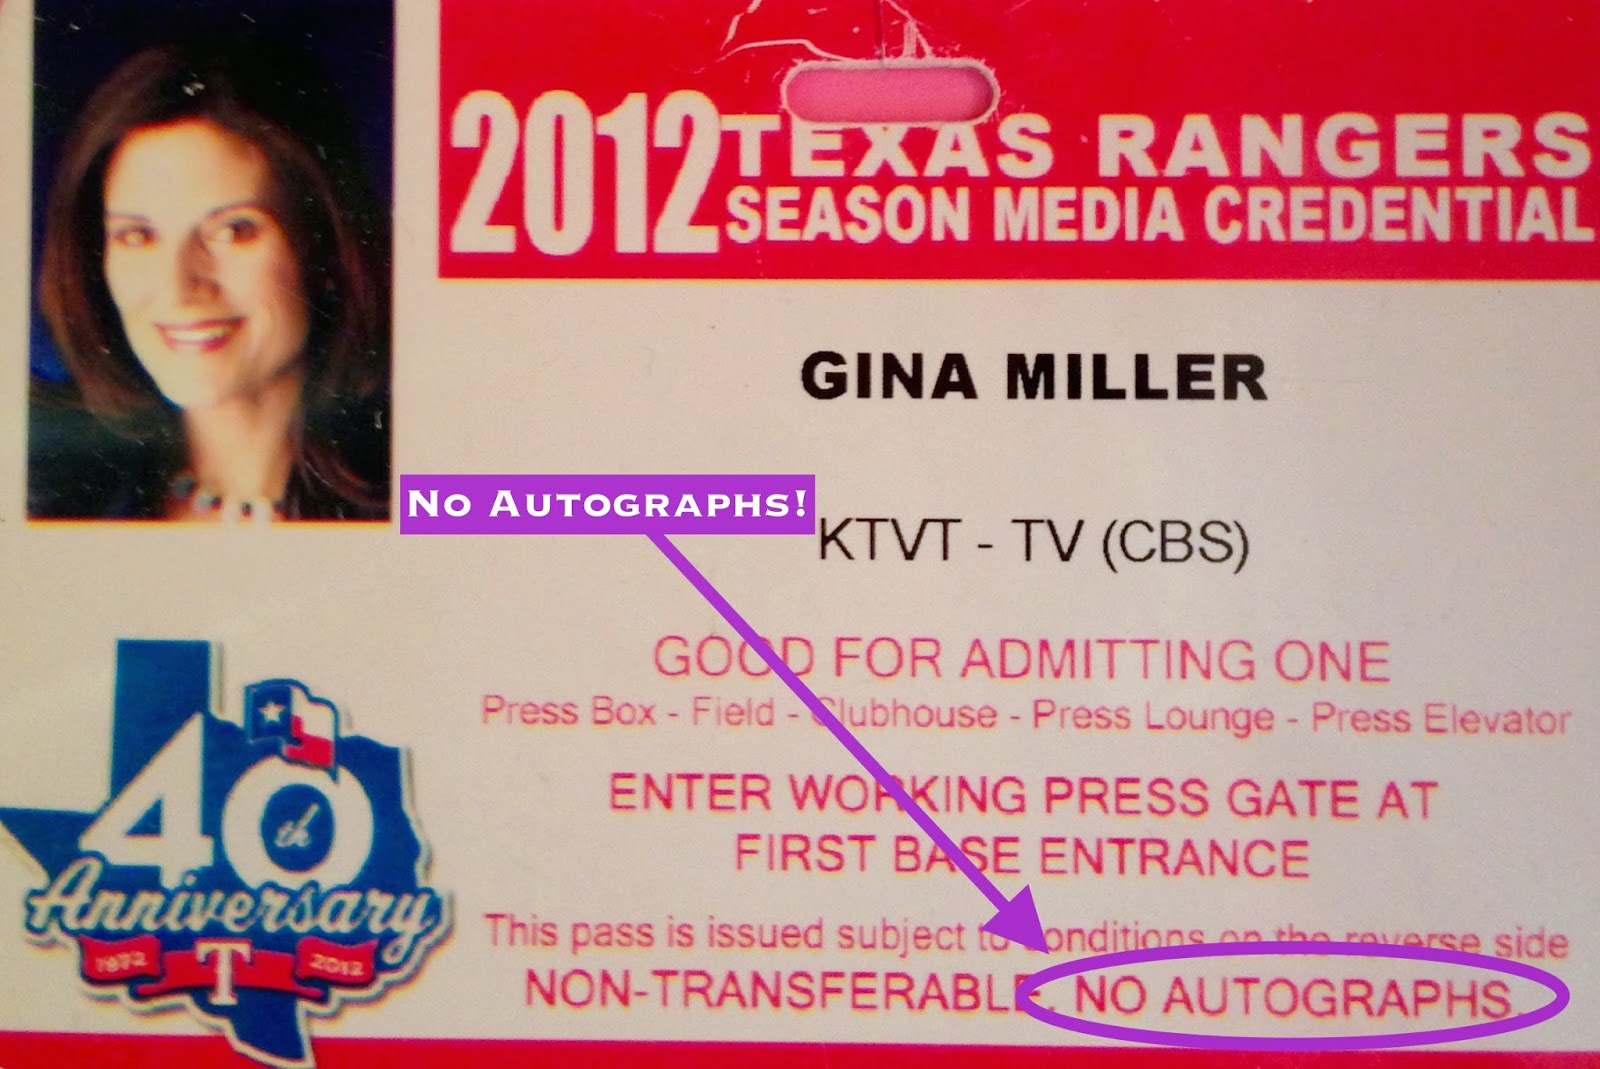 texas rangers credentials, sports broadcasting, sports media